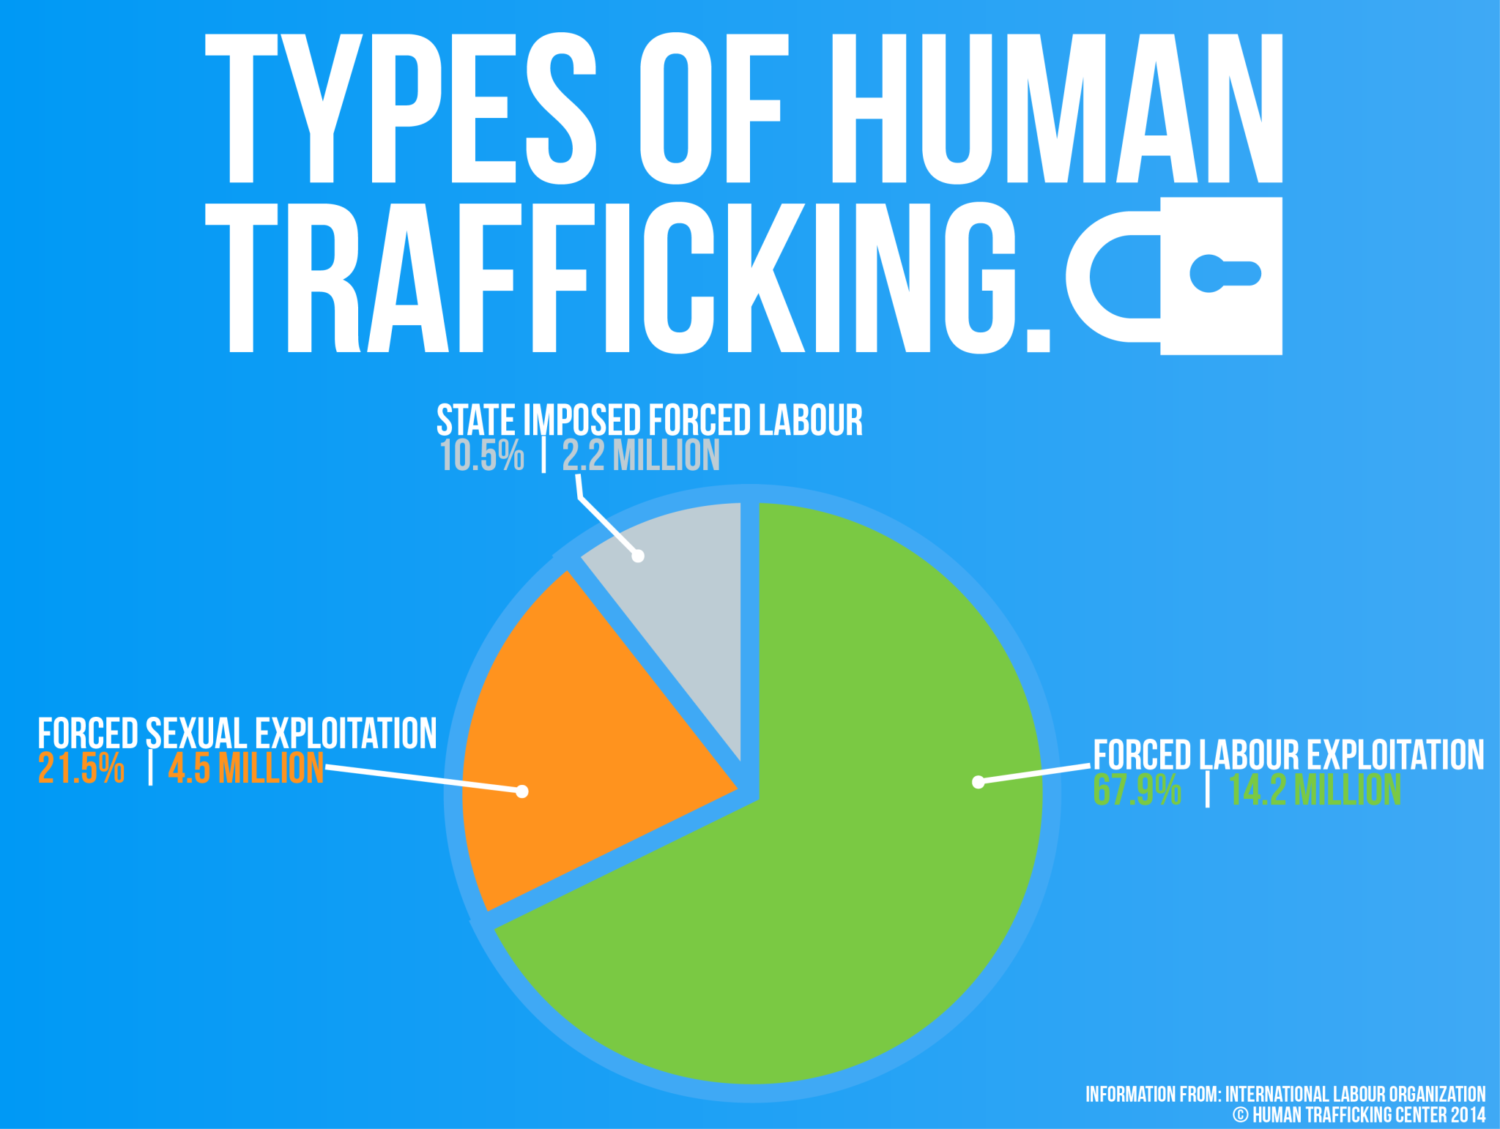 Realize that there is more than one form of human trafficking. - Often times, the form of human trafficking that I hear being discussed the most is sex trafficking. And it should be talked about! But, to be better advocates we also need to be aware that human trafficking comes in many forms that are often interrelated and complex. Human trafficking can happen in brick kilns and fishing boats in the form of labor trafficking, but it's also happening in brothels. To learn more about the different forms of human trafficking visit IJM.